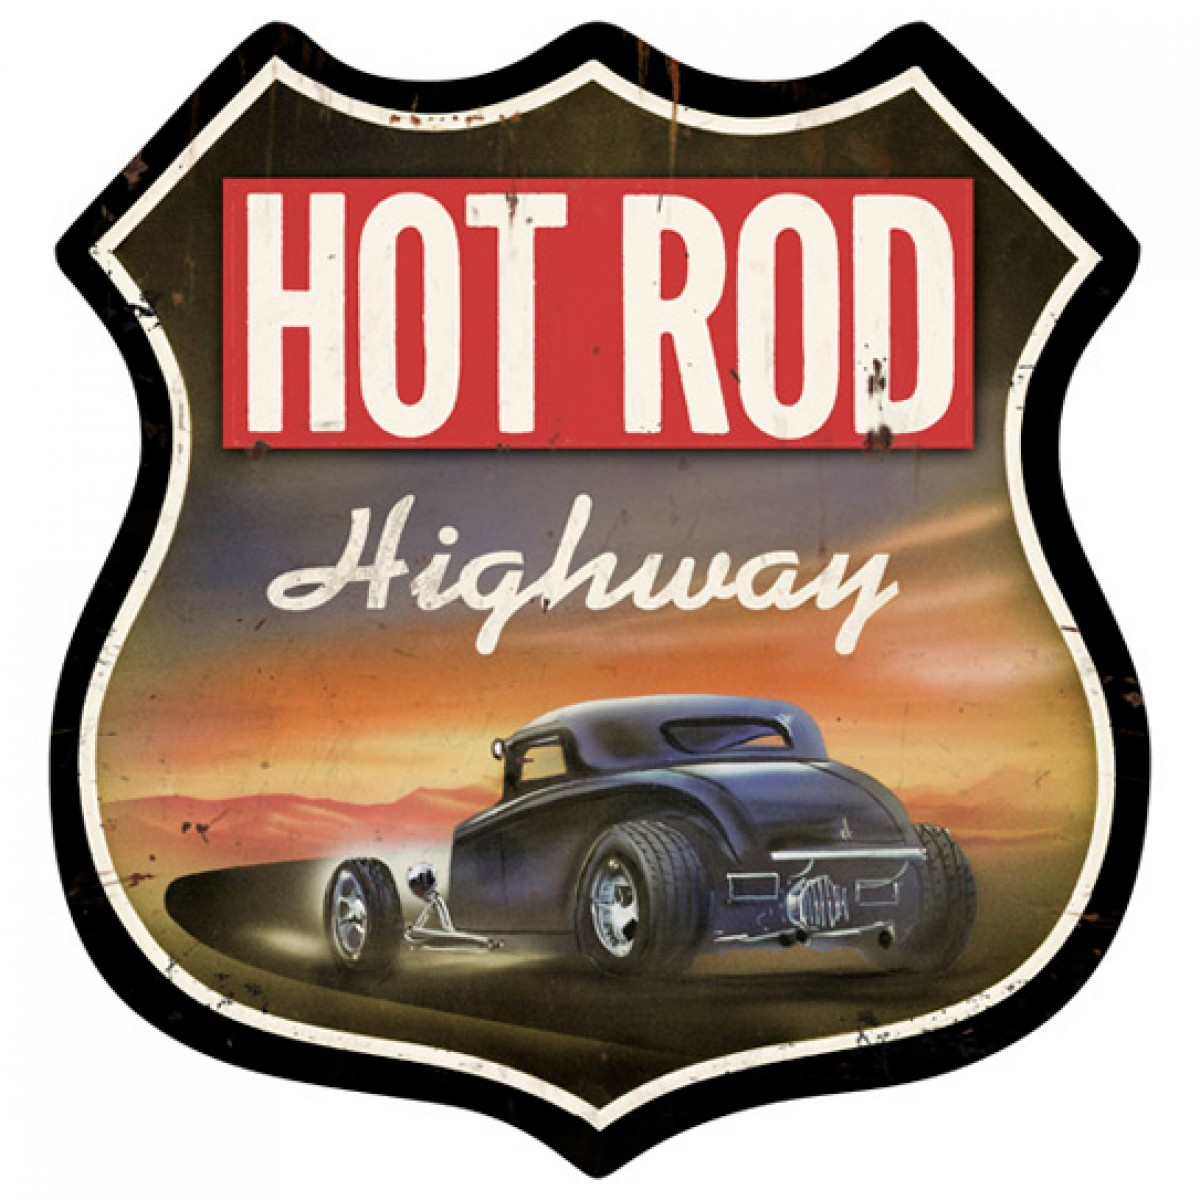 Hossrods Com Quot Hot Rod Highway Quot Sign From The Hot Rod